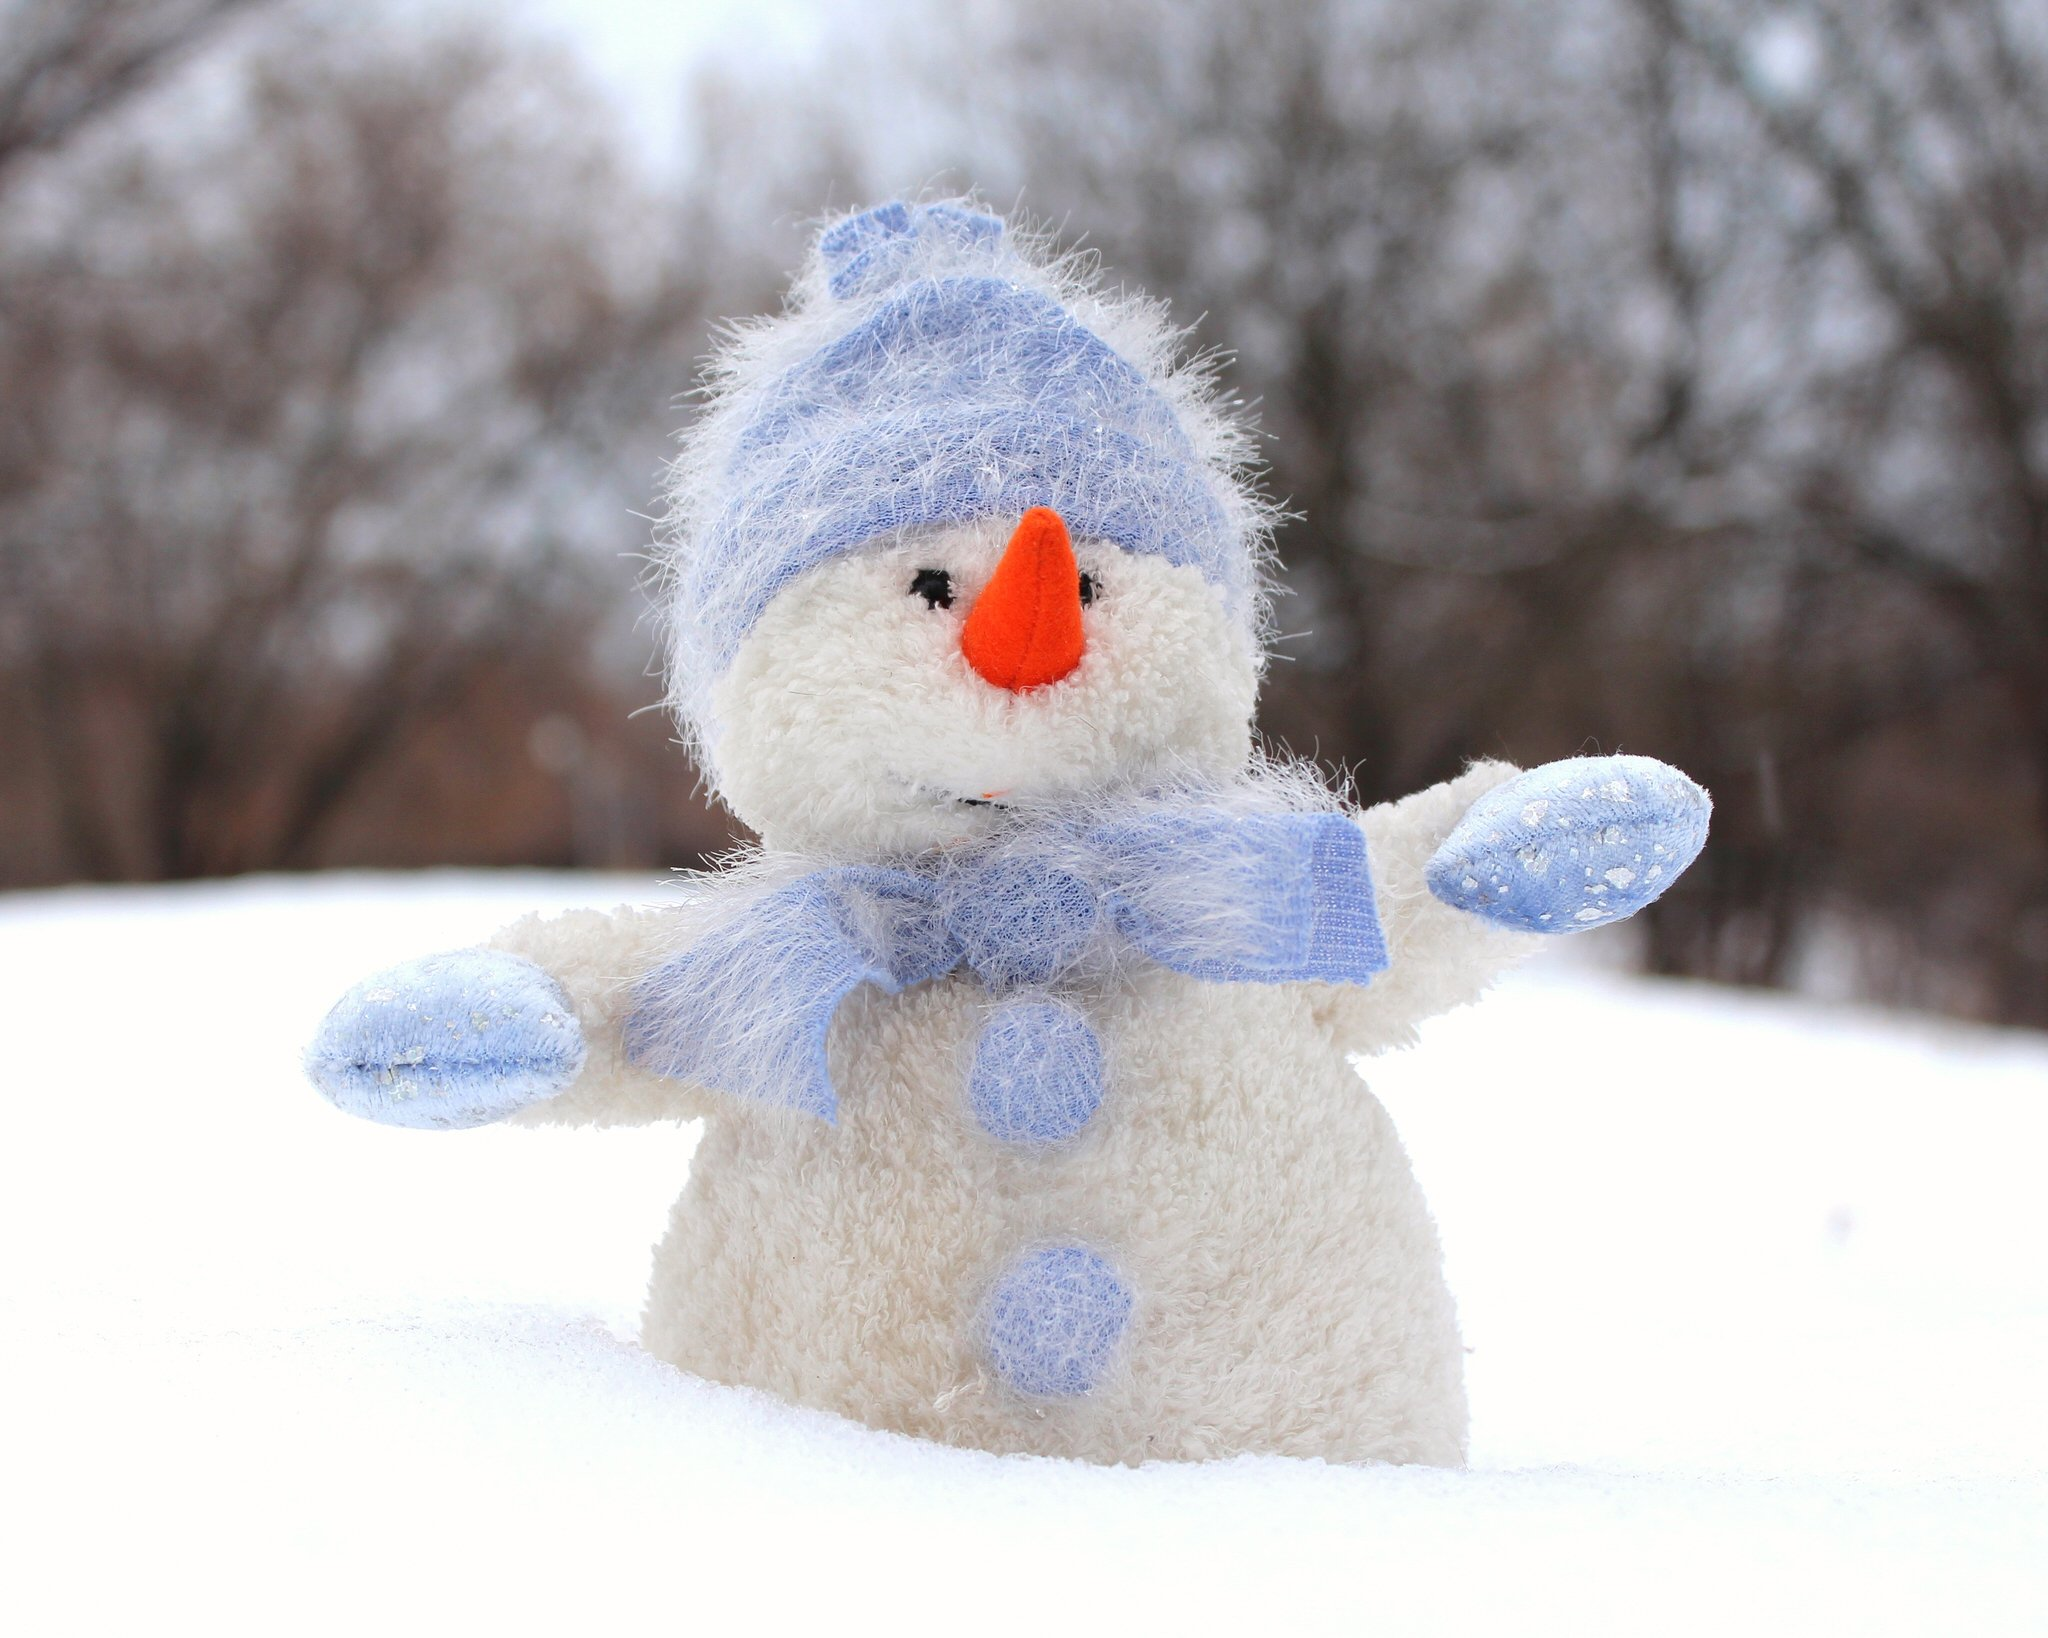 Alana Lee Photography: snowman before adding a snow overlay in photoshop